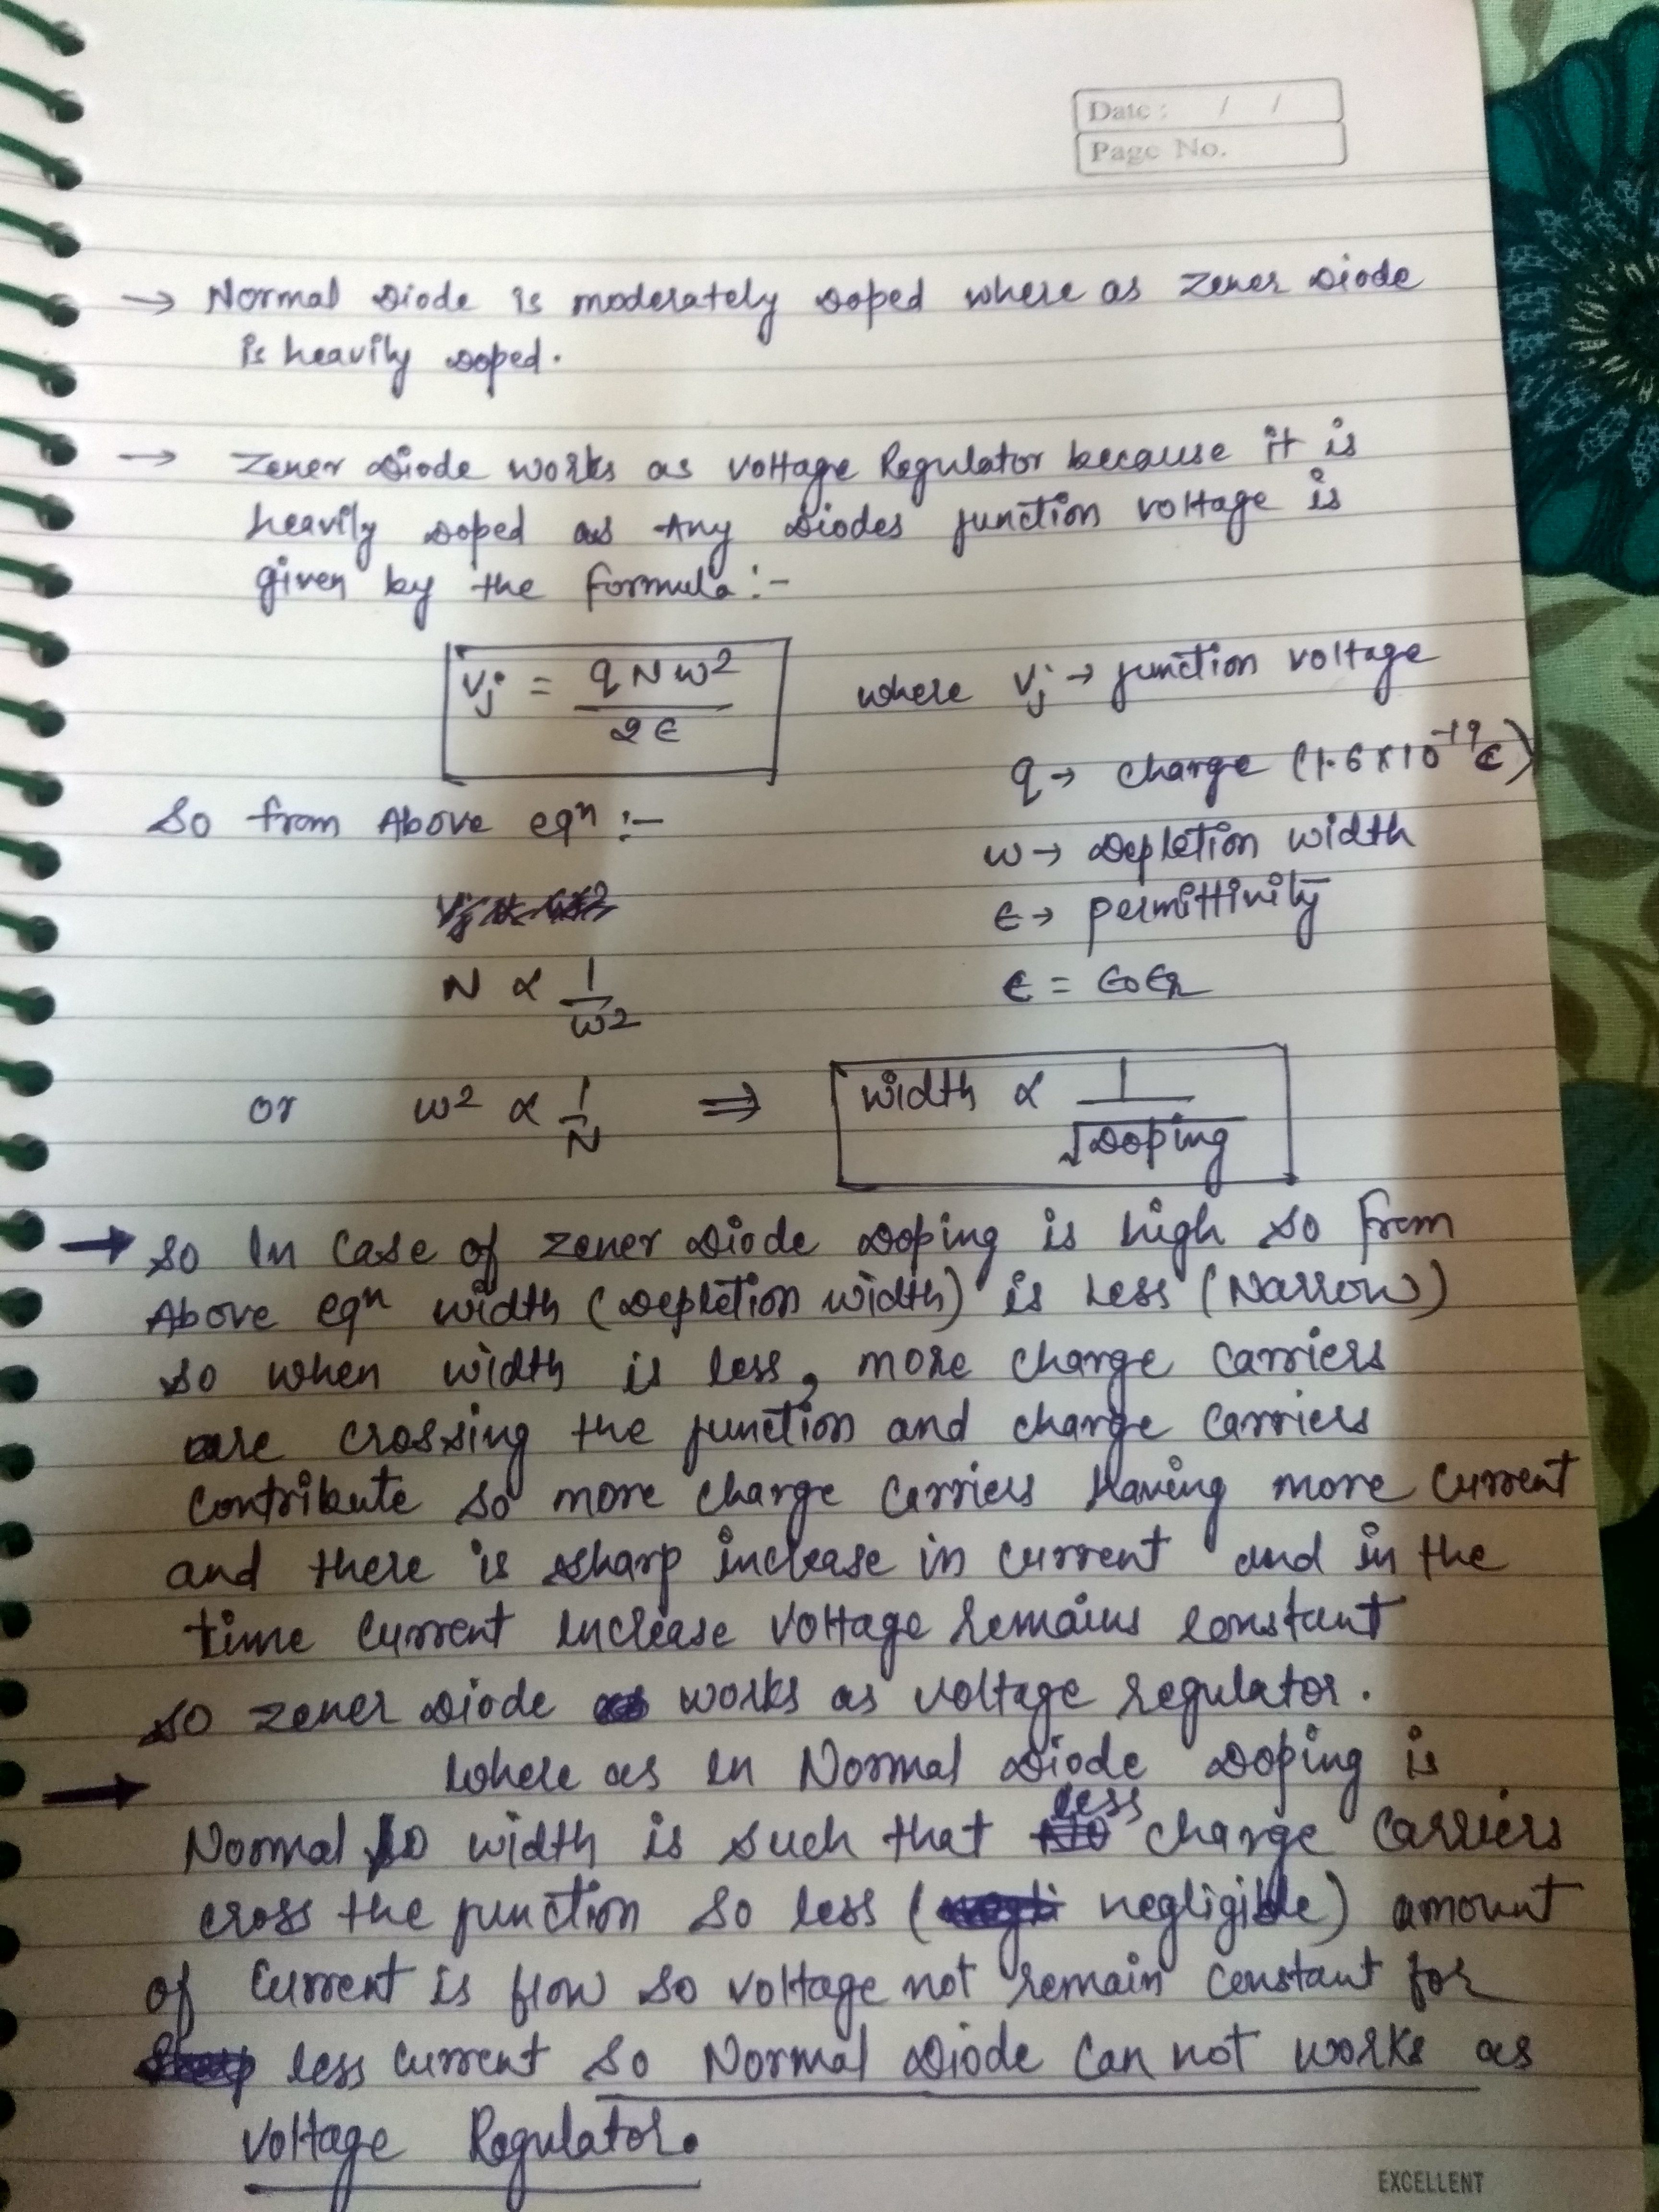 Why Cant We Use A Normal Diode As Voltage Regulator In Reverse And Zener Simple Circuit Hope You Understand